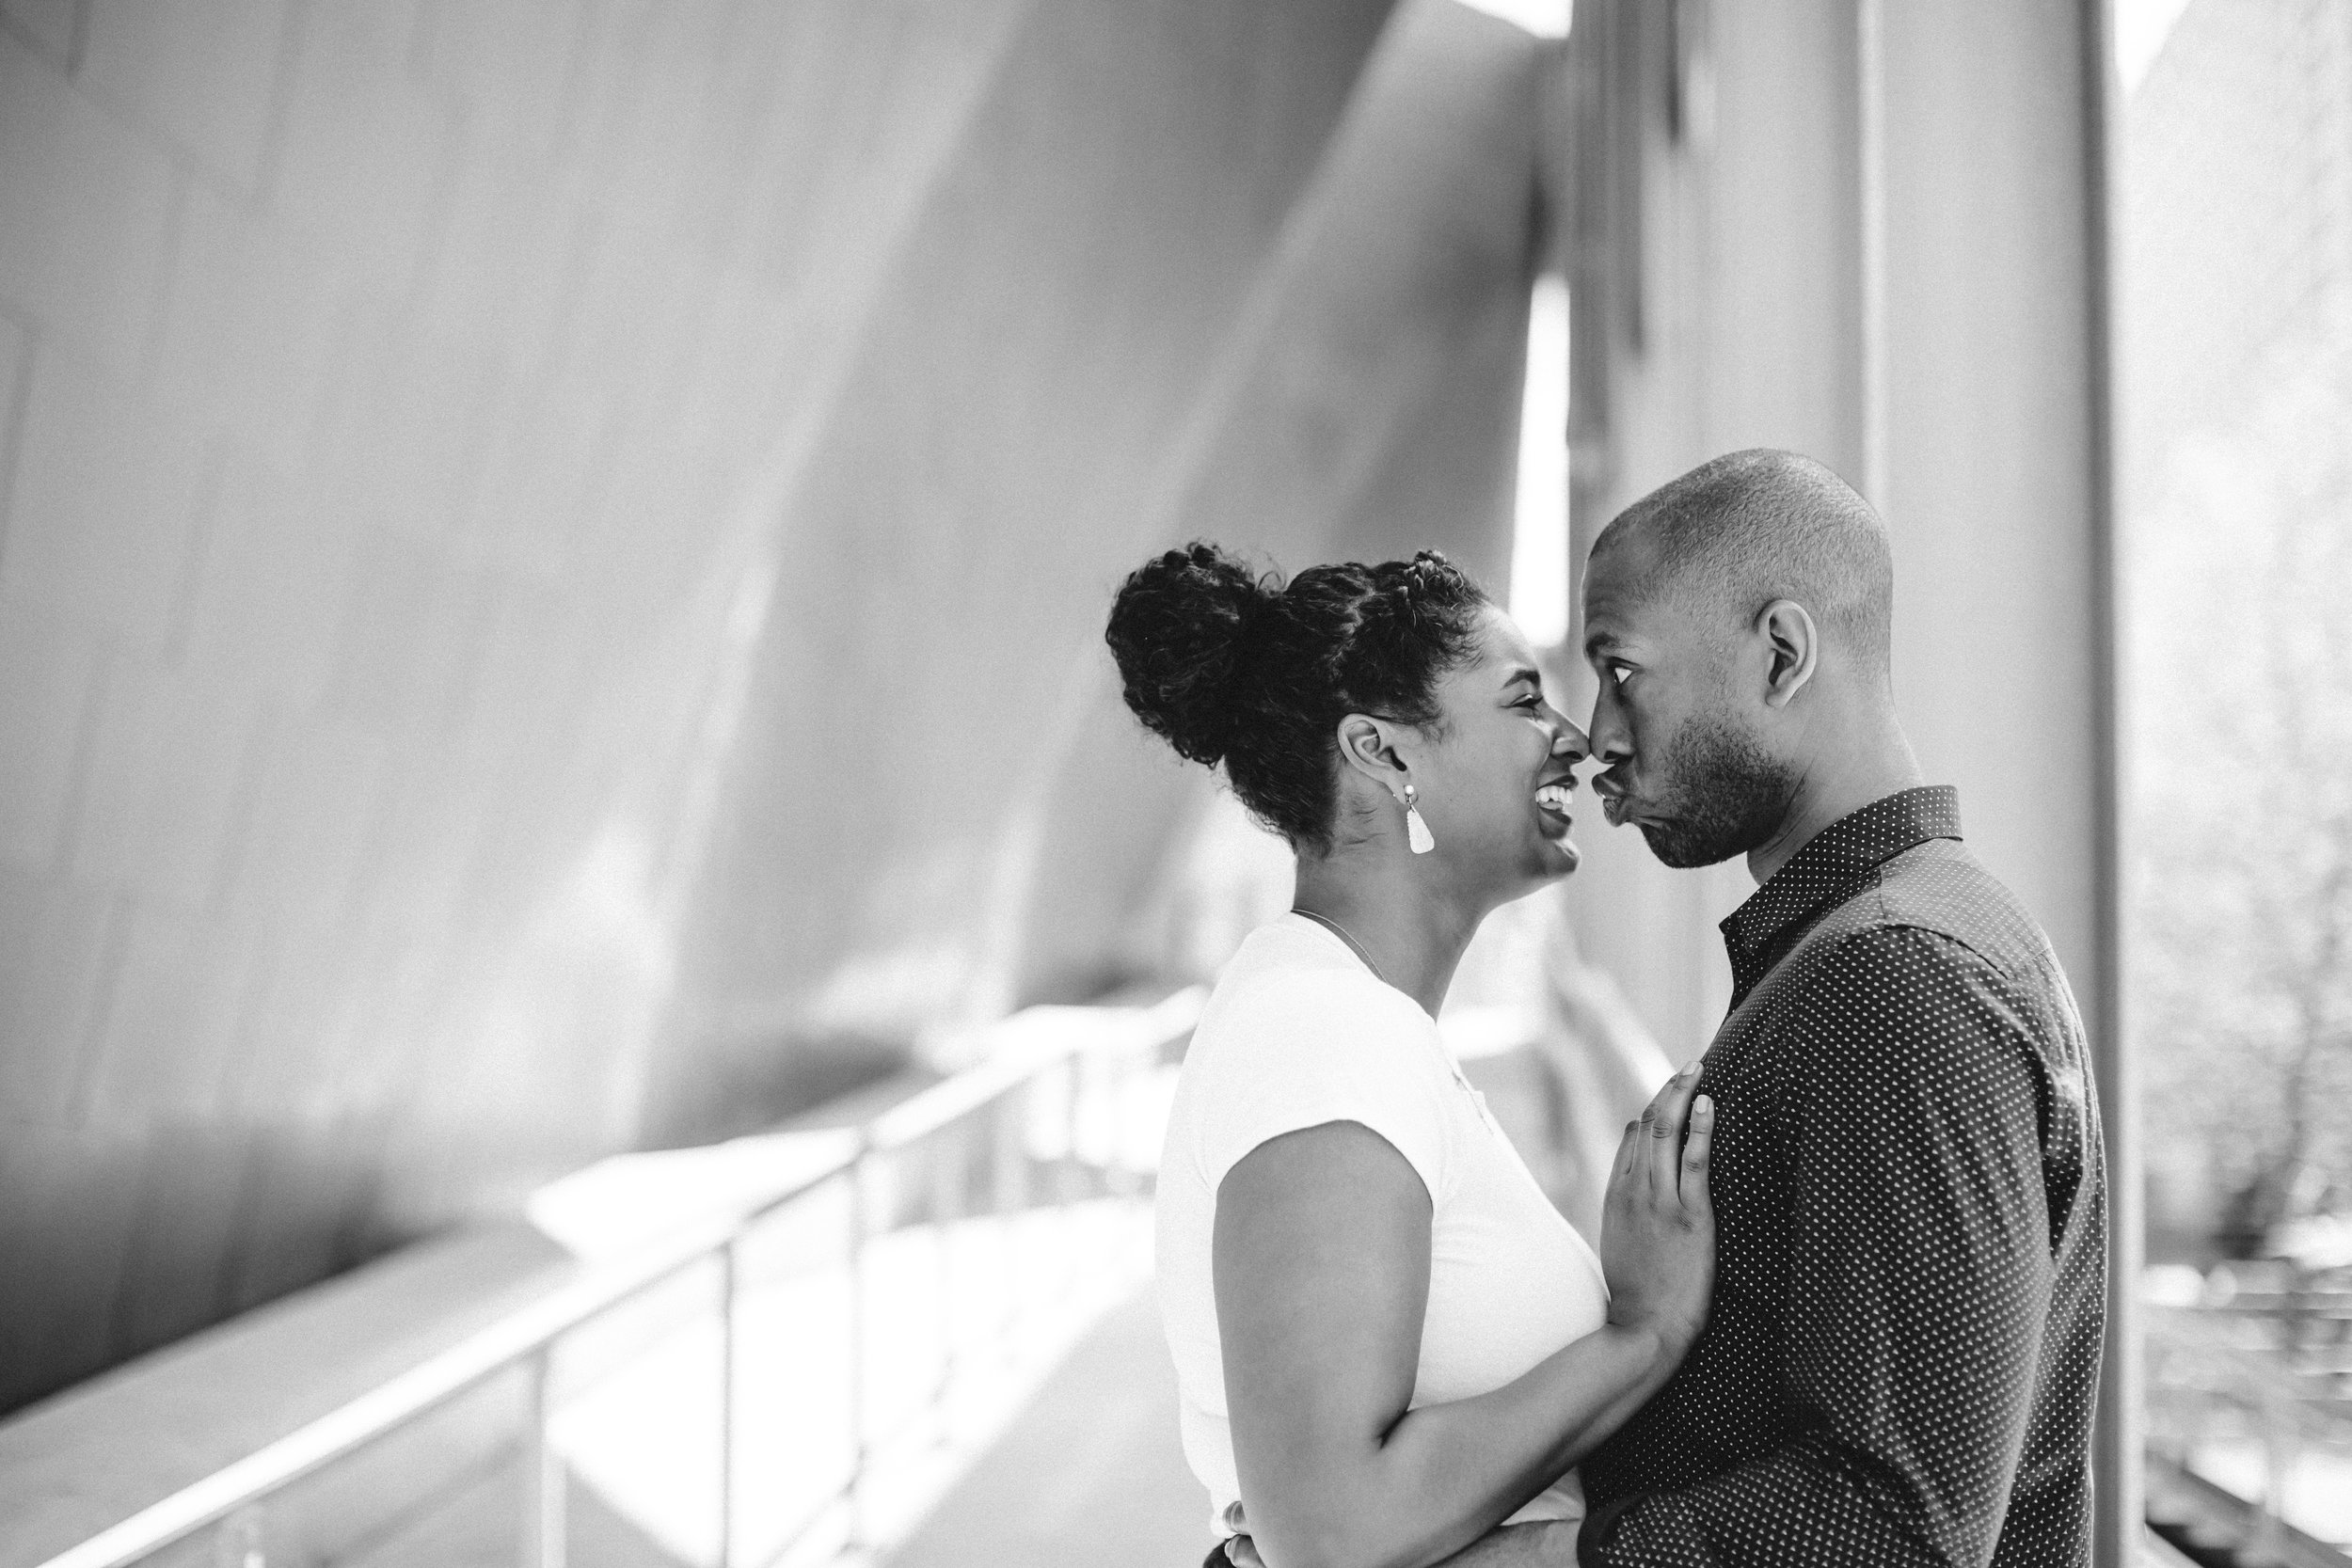 engagement photography St. Louis, engagement portraits utah, engagement photos denver, engagement photos in the city